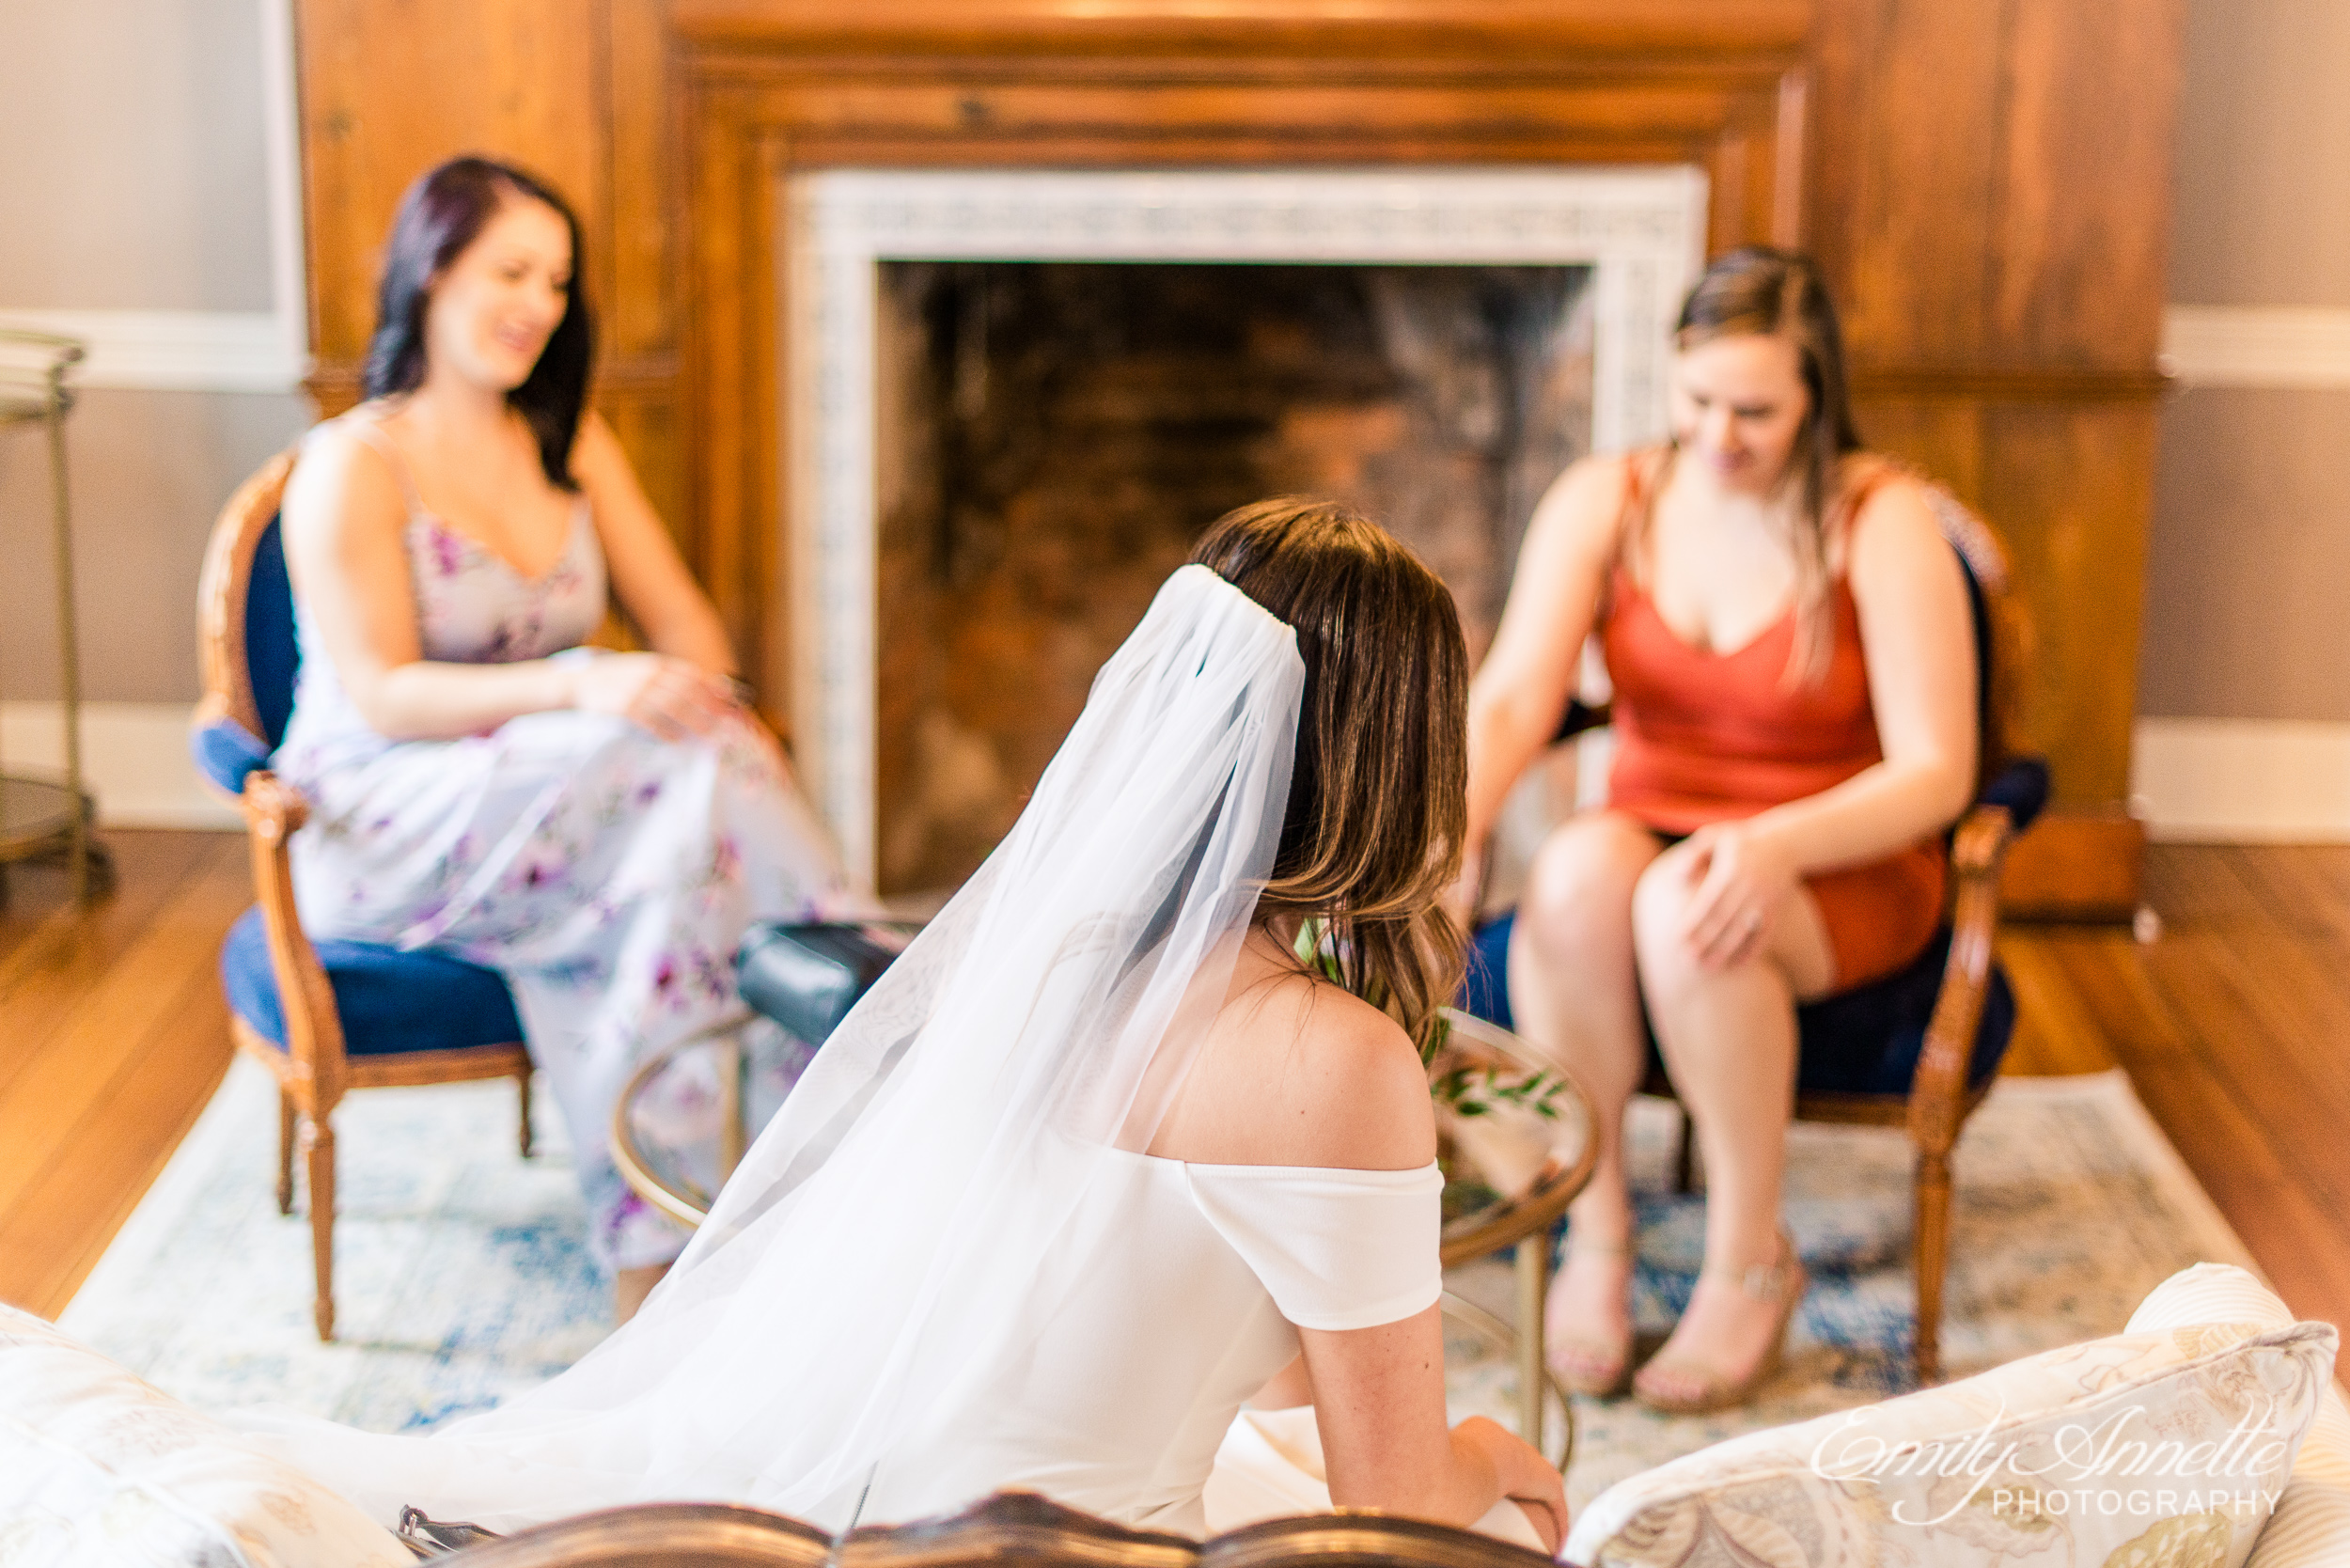 A bride getting ready with her bridesmaids in the bridal suite for her wedding at Fleetwood Farm Winery in Leesburg, Virginia